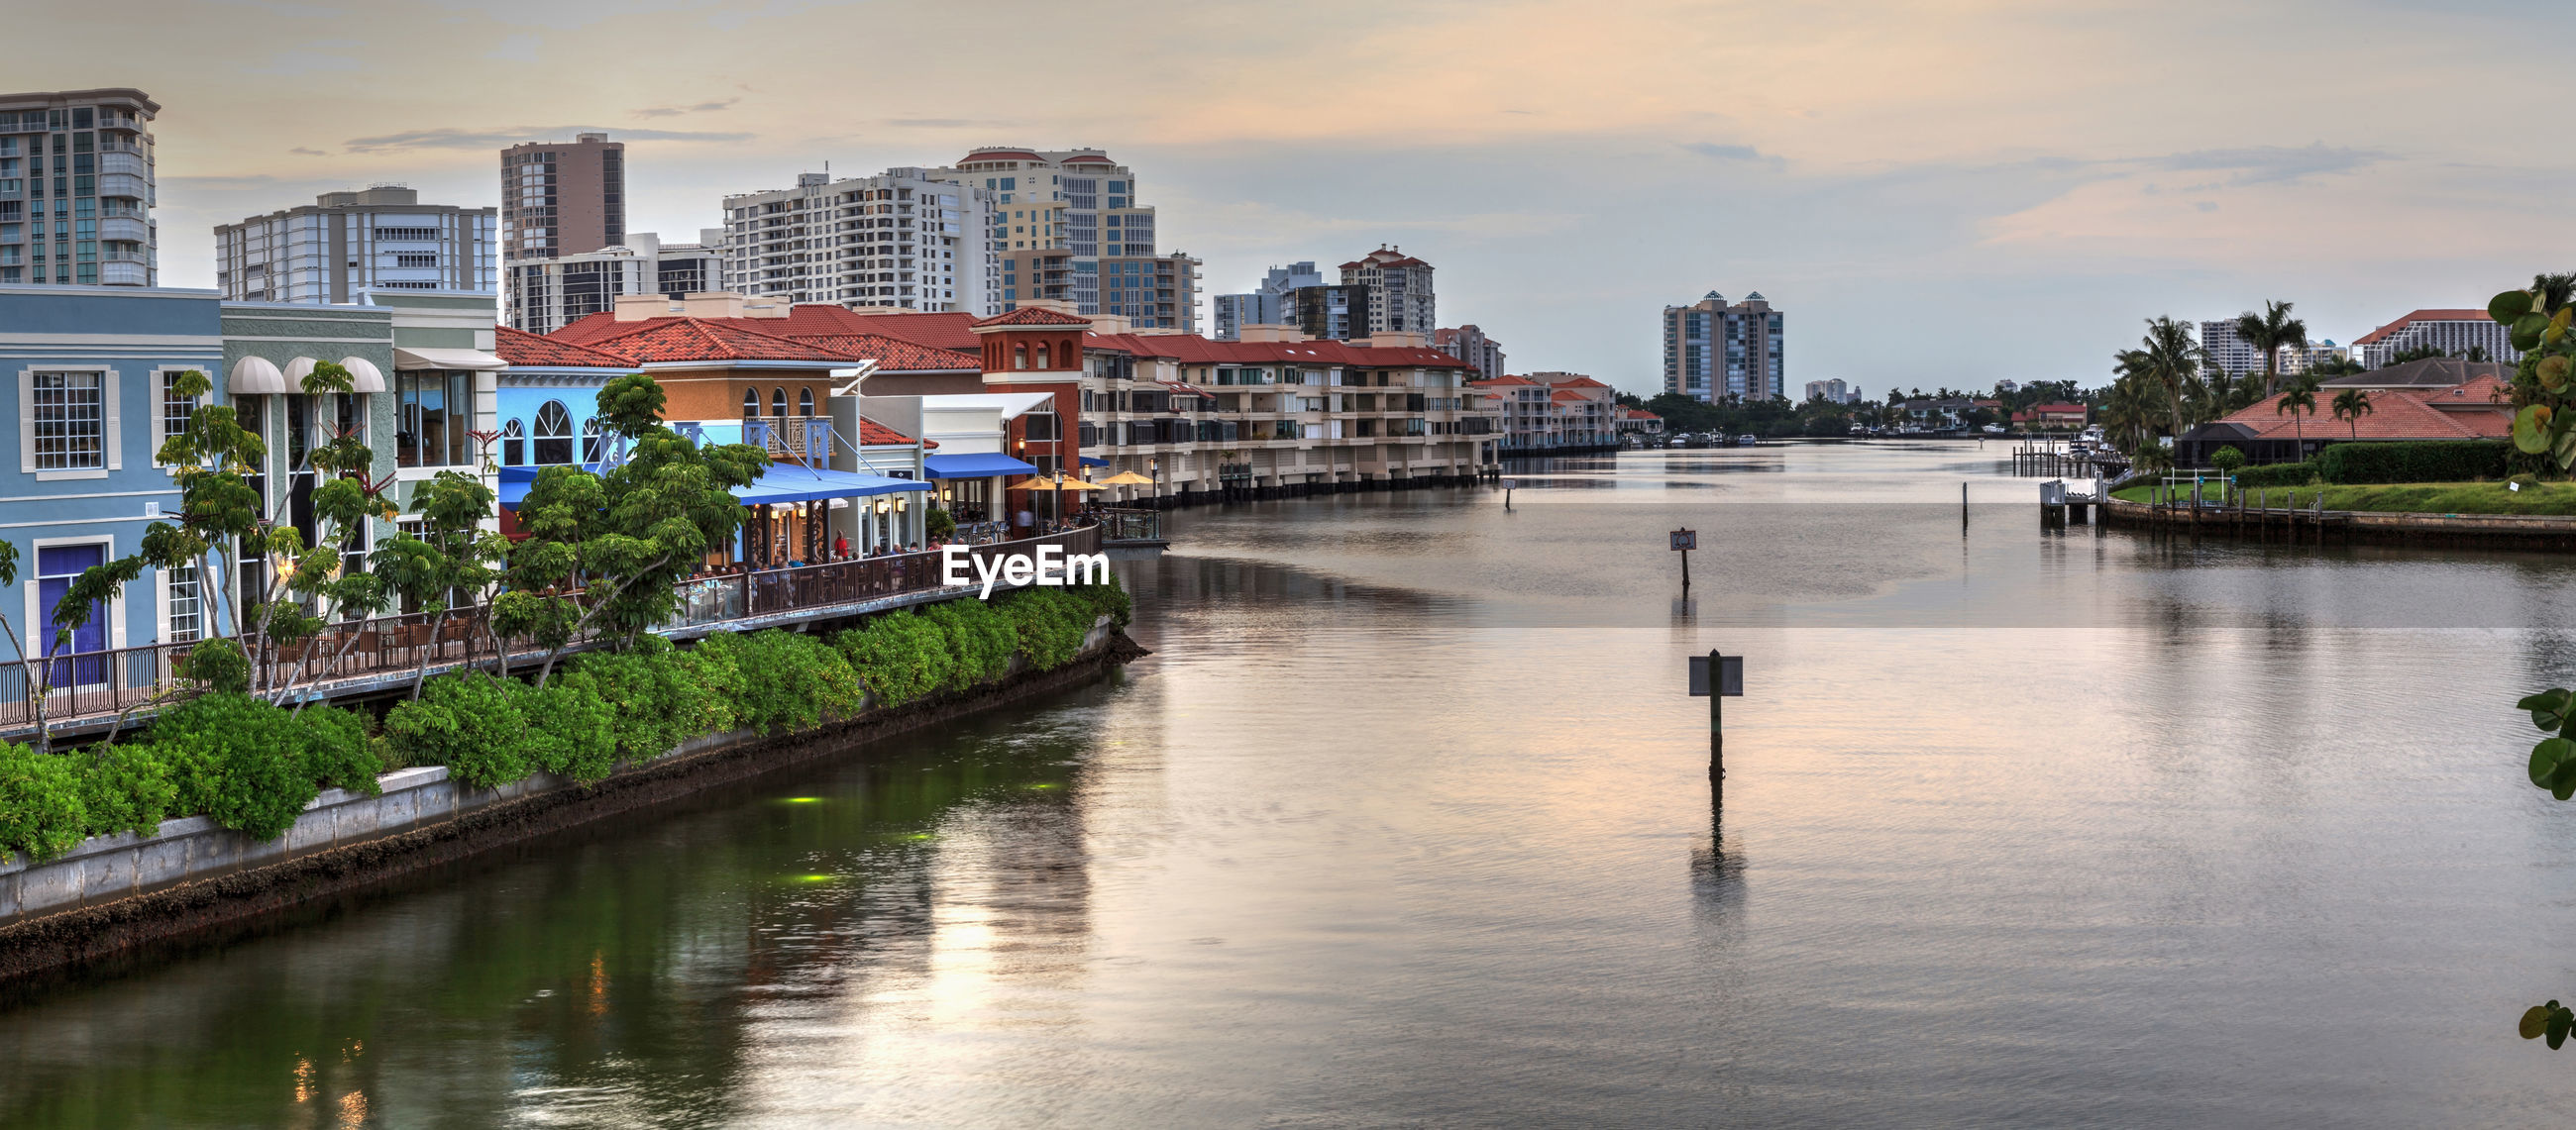 SCENIC VIEW OF RIVER BY BUILDINGS AGAINST SKY IN CITY